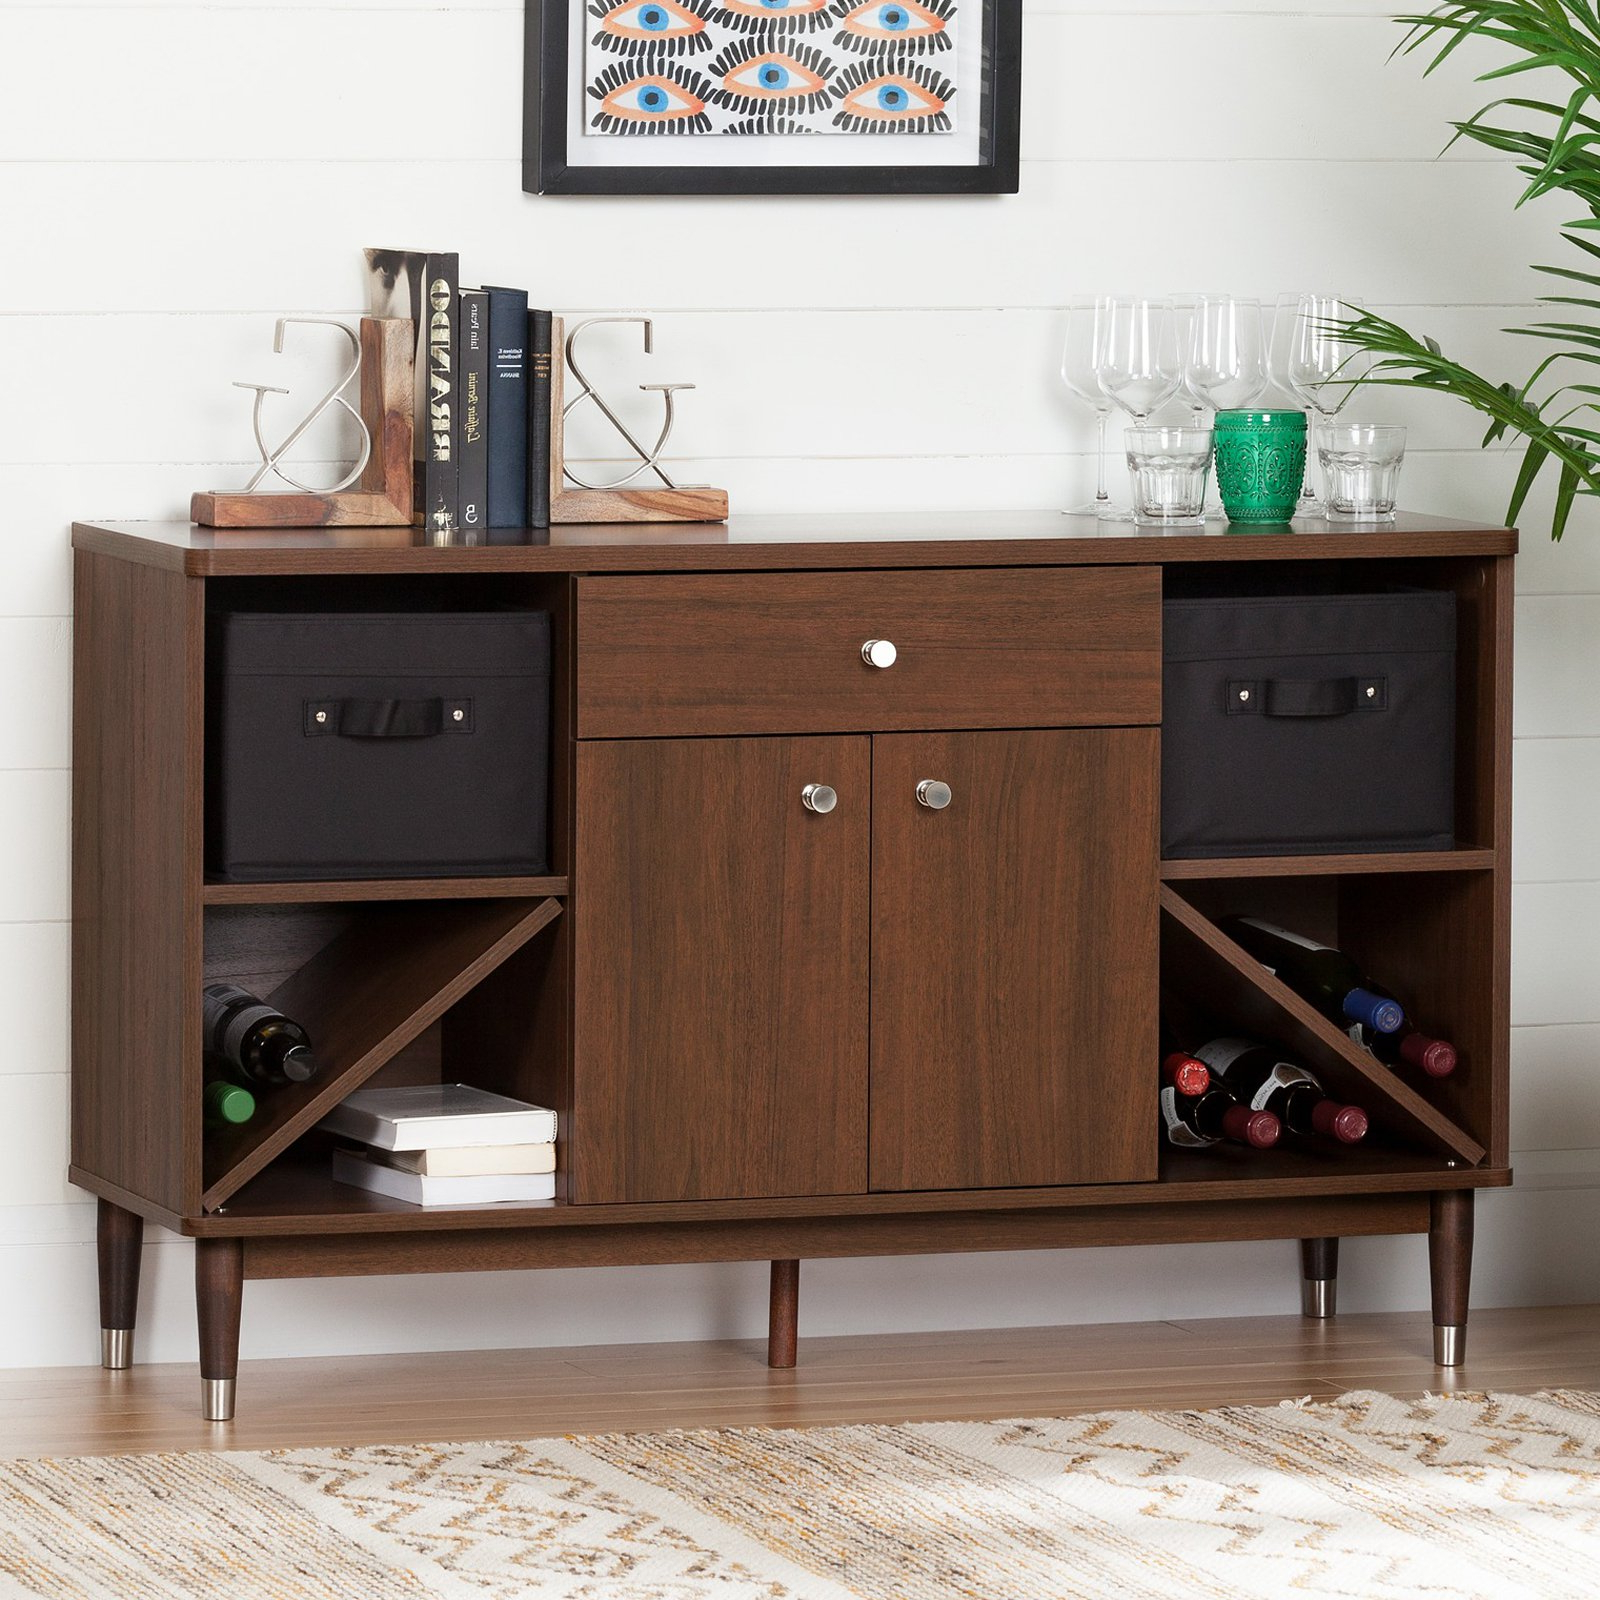 South Shore Olly Mid Century Modern Sideboard Storage Cabinet, Brown Walnut Within Mid Century Brown And Grey Sideboards (View 10 of 20)